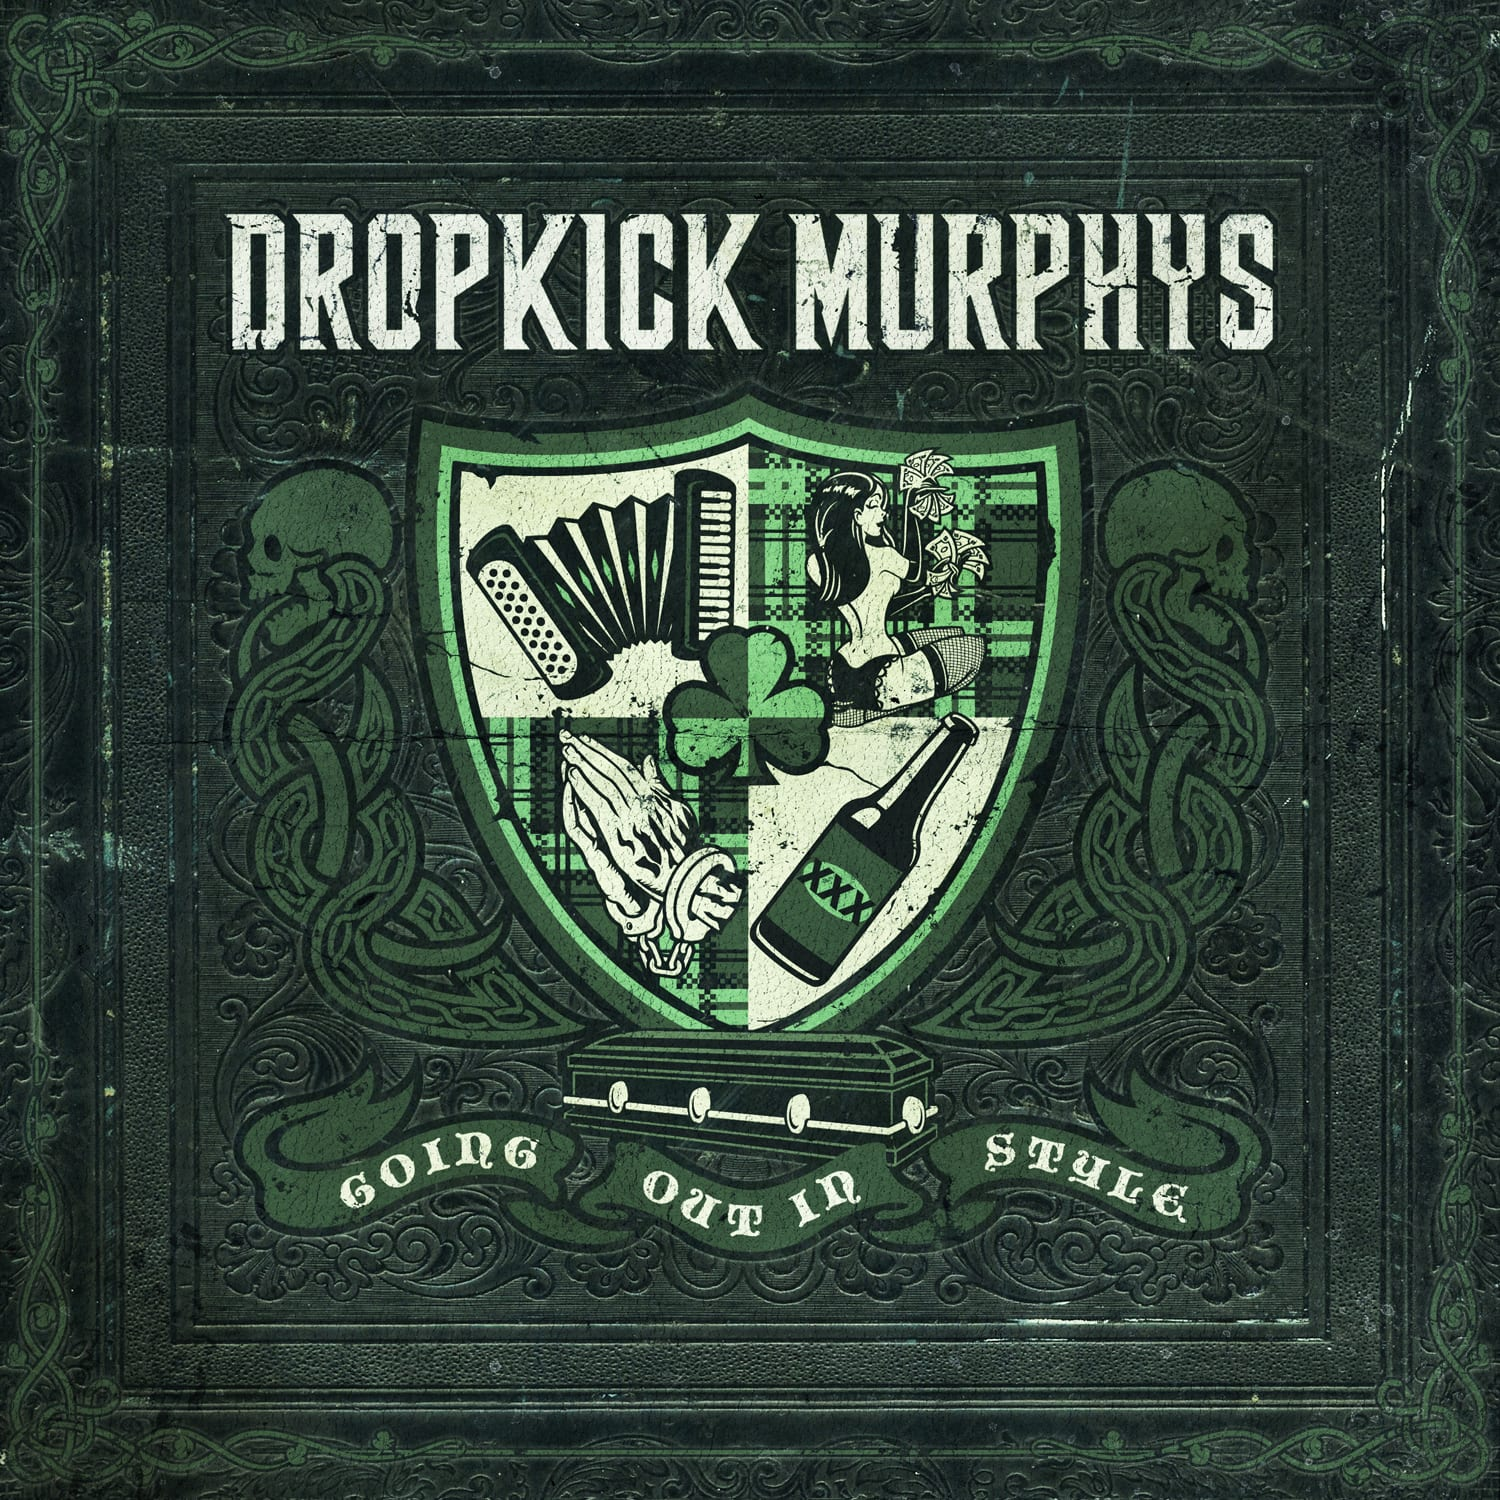 Dropkick Murphys: Going Out in Style album review